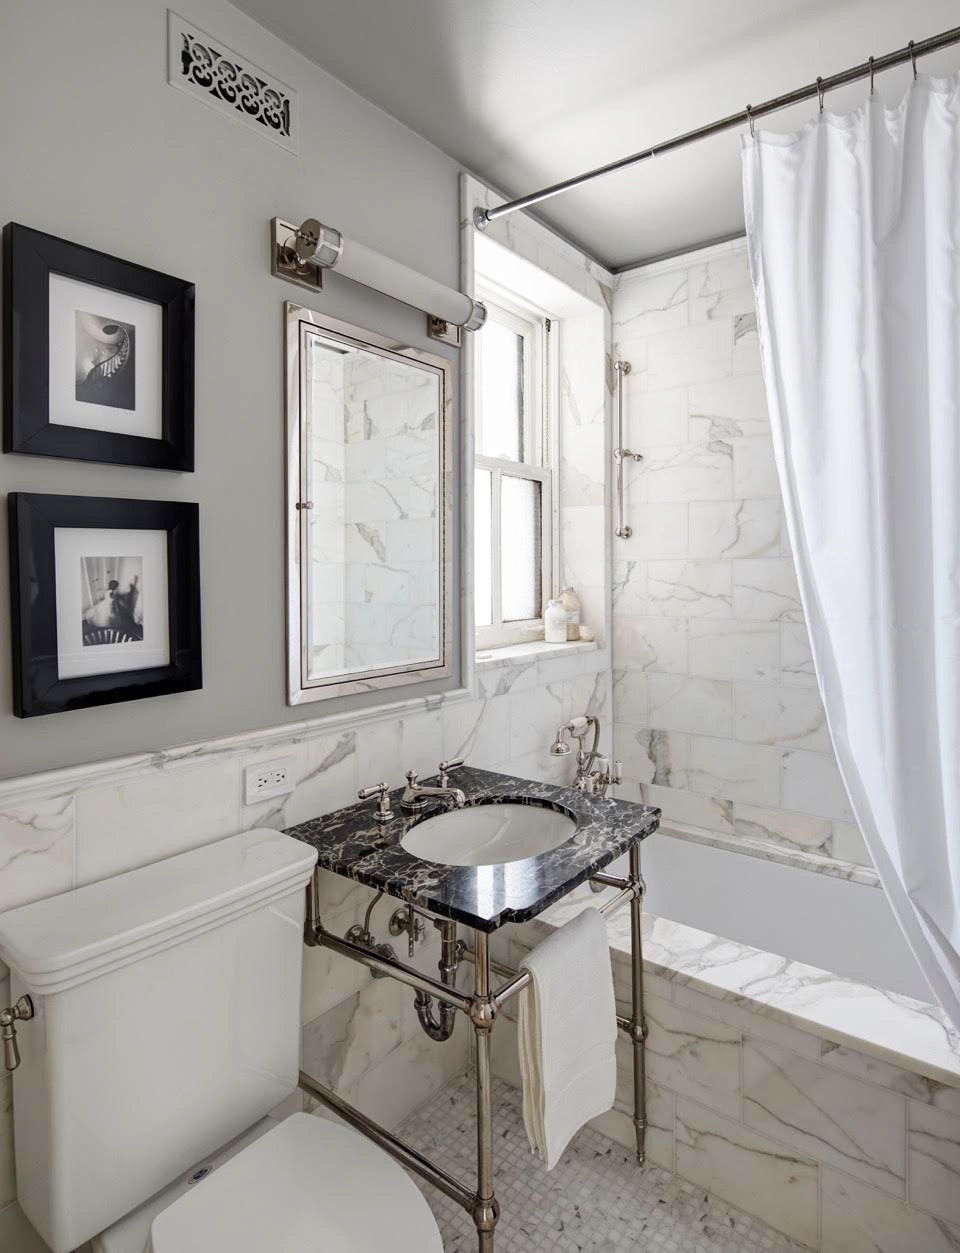 5 Tips From An Elegant Small Space Bathroom Decorating